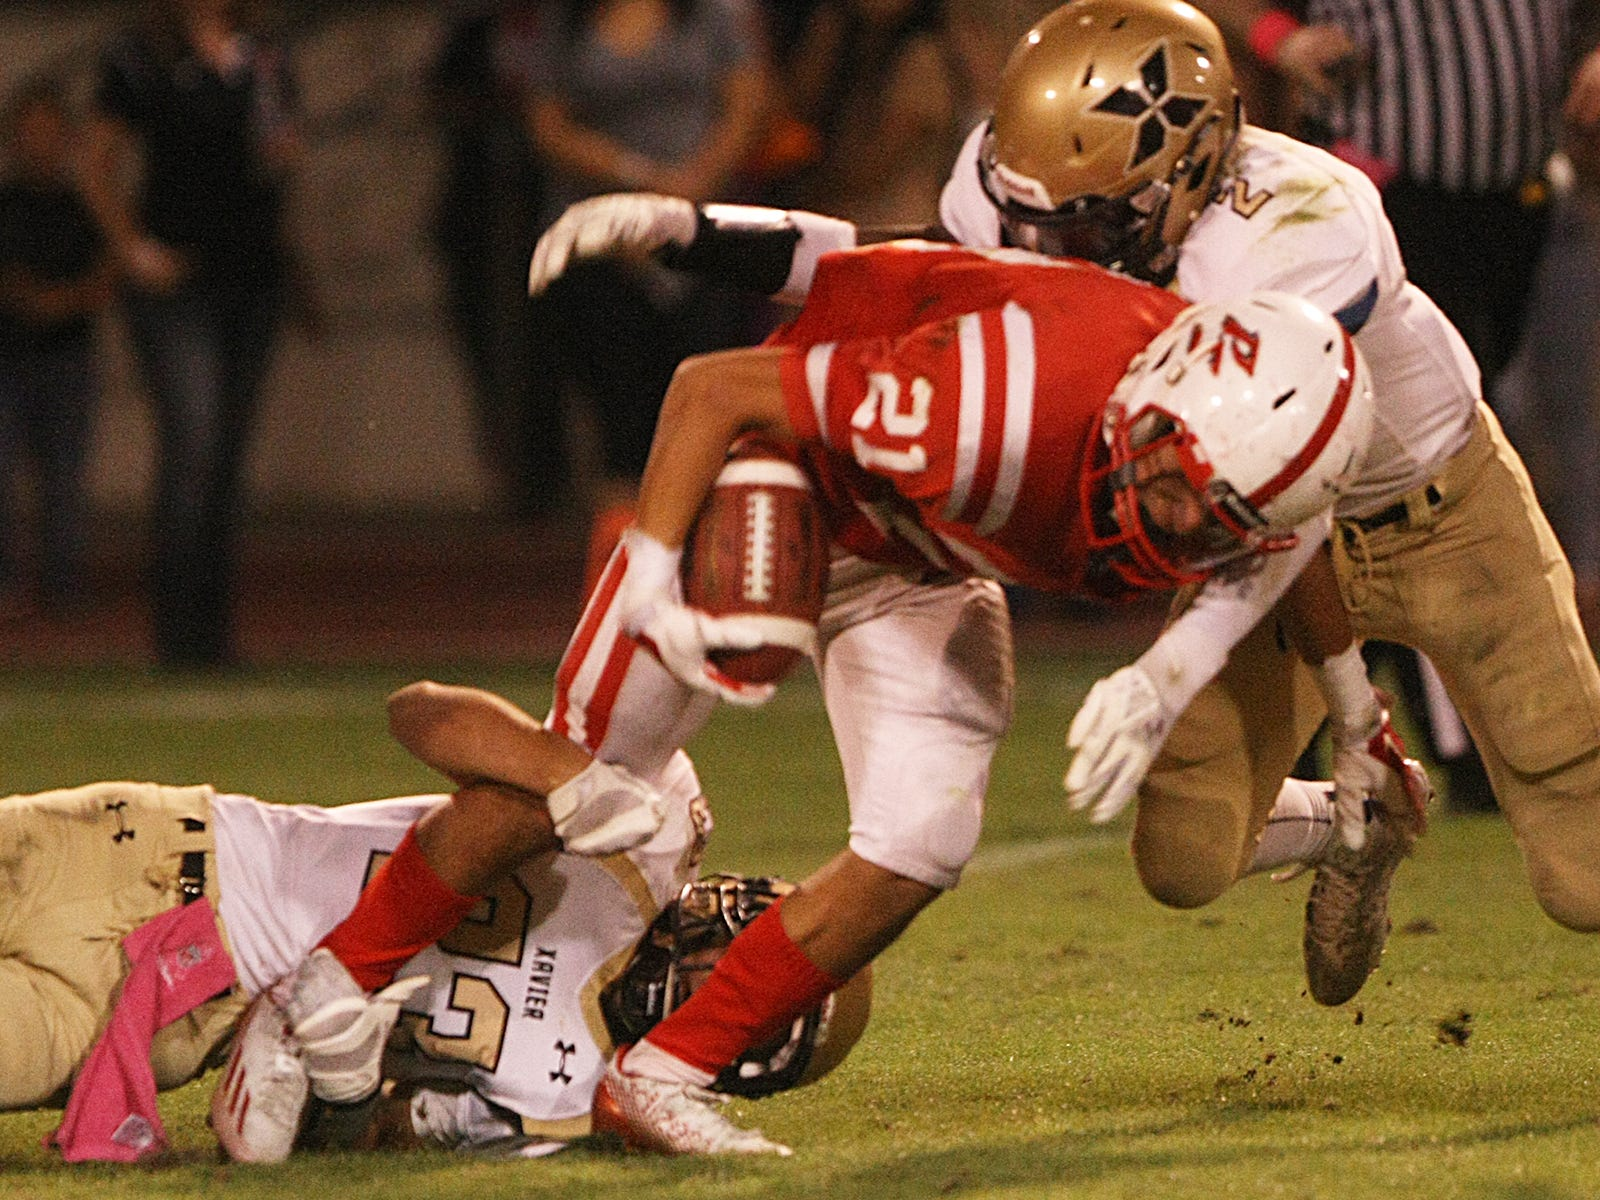 Saints defenders Mason Sarna (23) and Fisayo Omilana (2) combine to stop Indians ball carrier Randolph Mullen on Friday. The Indians won 42-7.